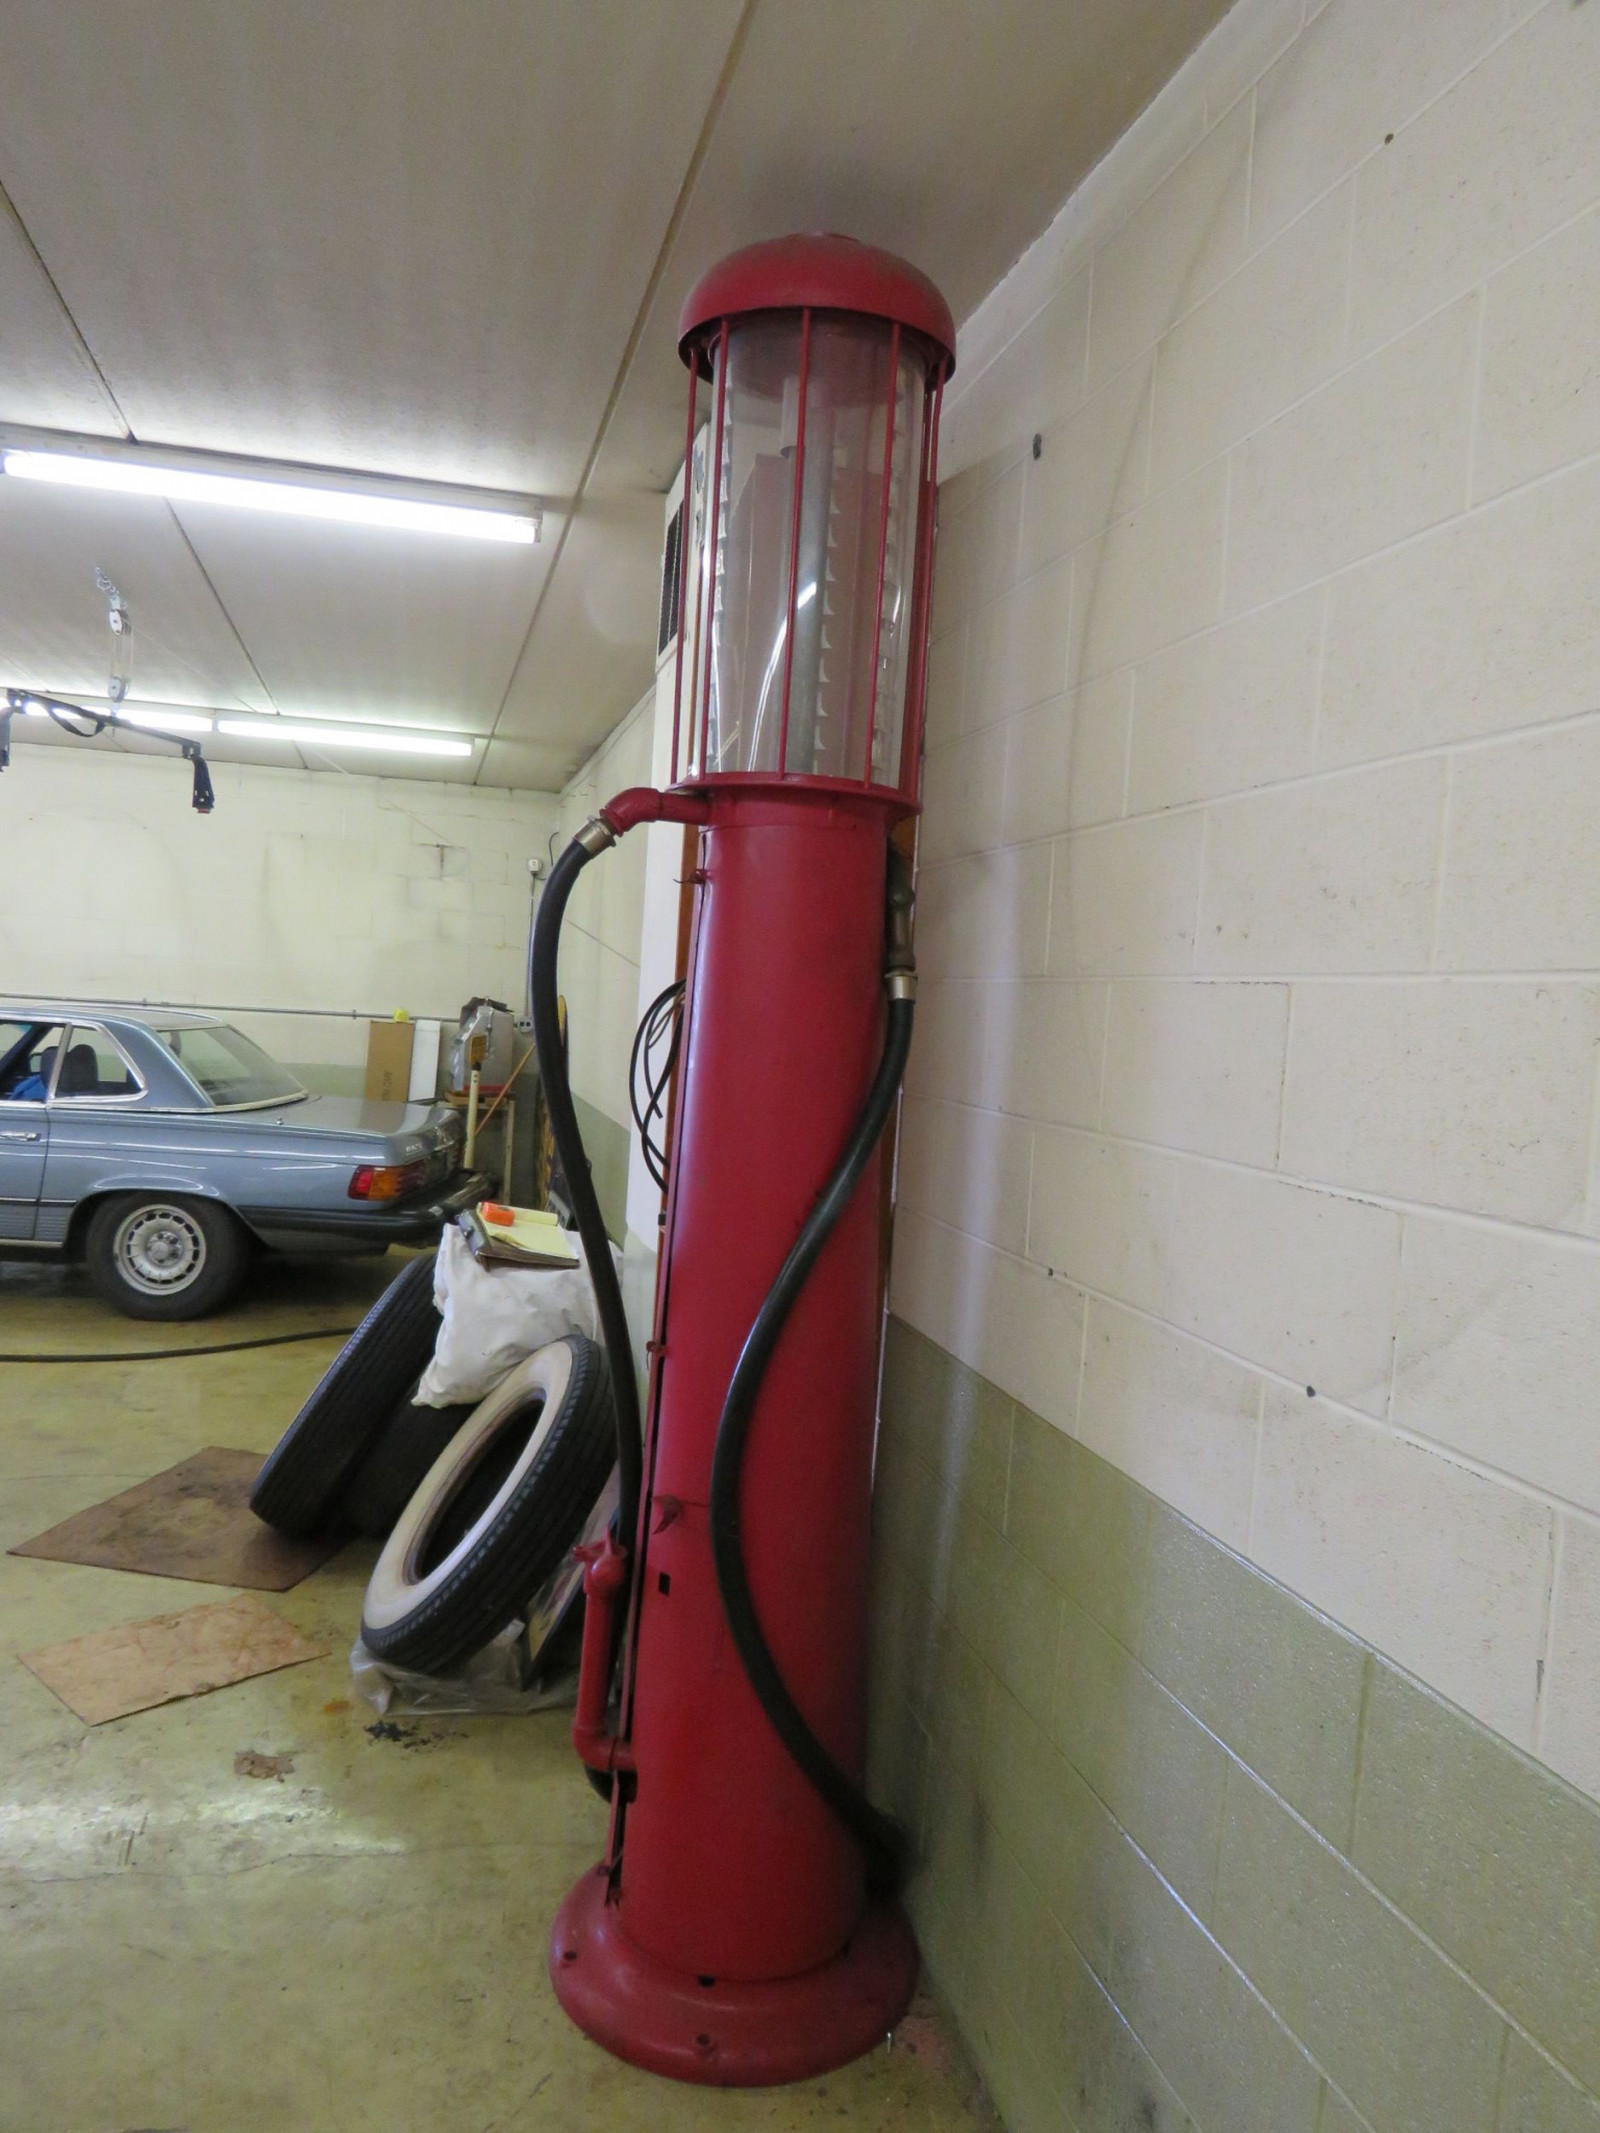 Wayne Upright Visible 10 Gallon Gas Pump - Image 3